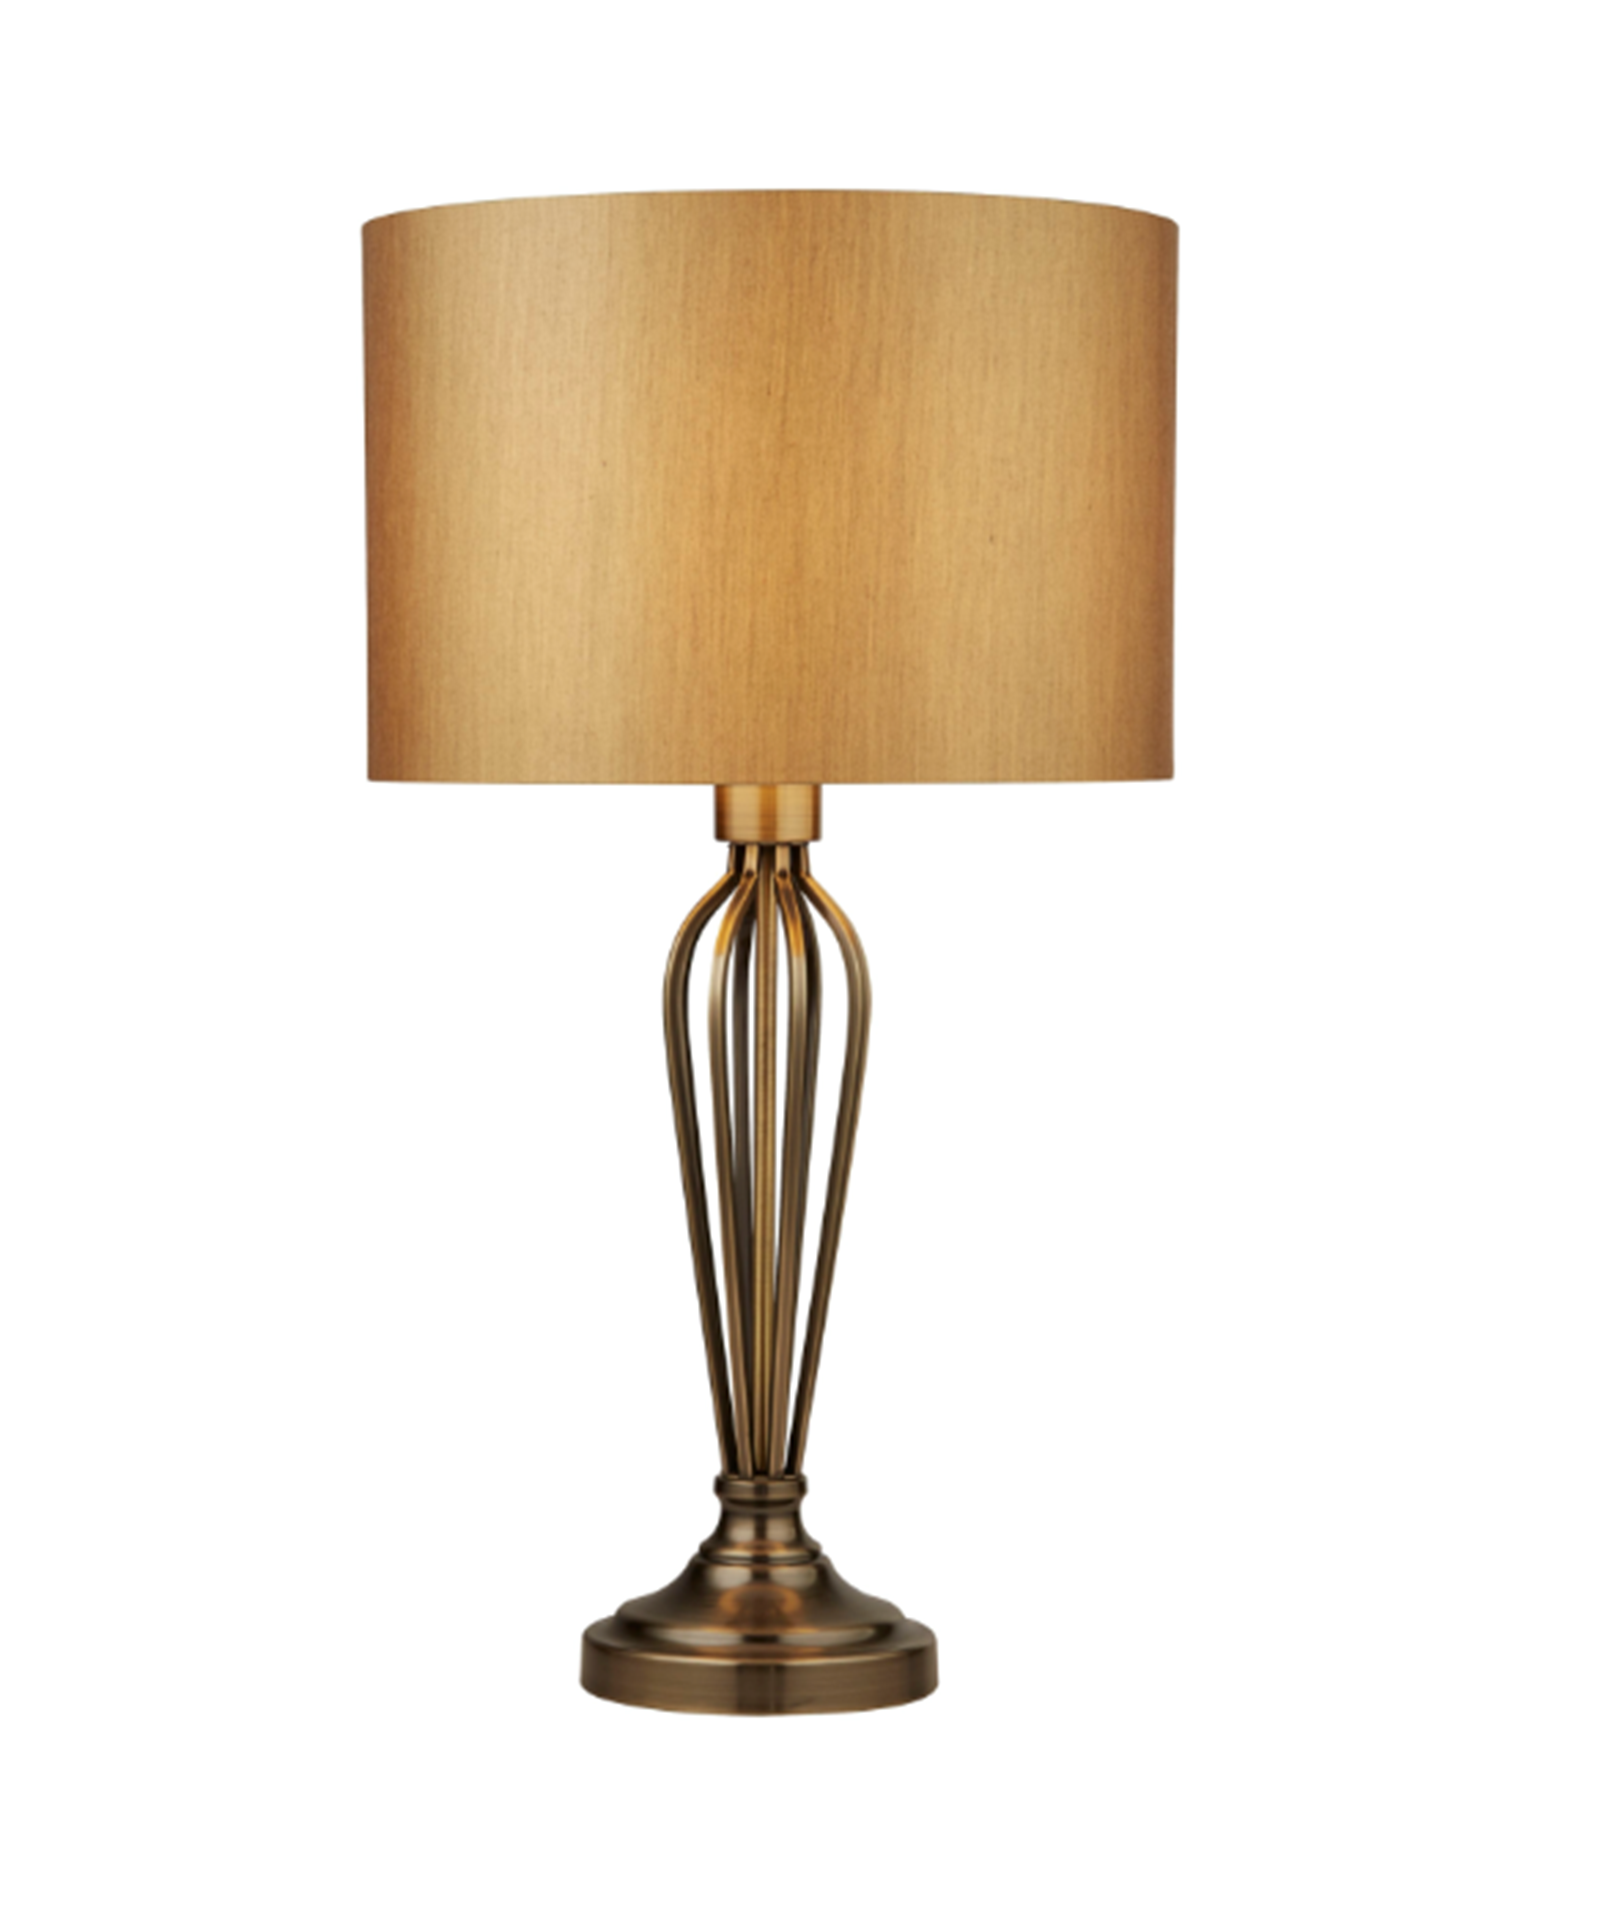 SEARCHLIGHT ANTIQUE BRASS TABLE LAMP WITH GOLD SHADE 2803AB